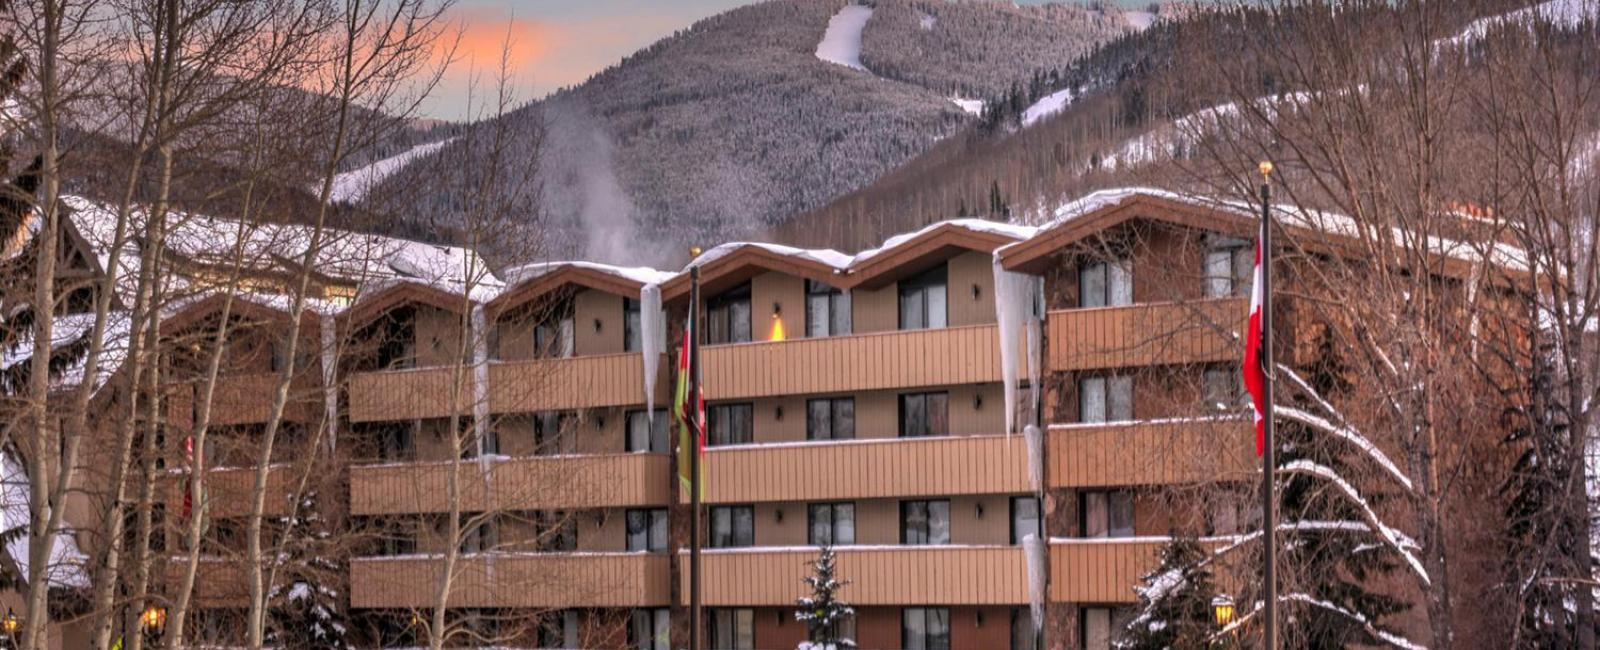 Vail Realty Scorpio Vacation Rentals In The Vail Valley